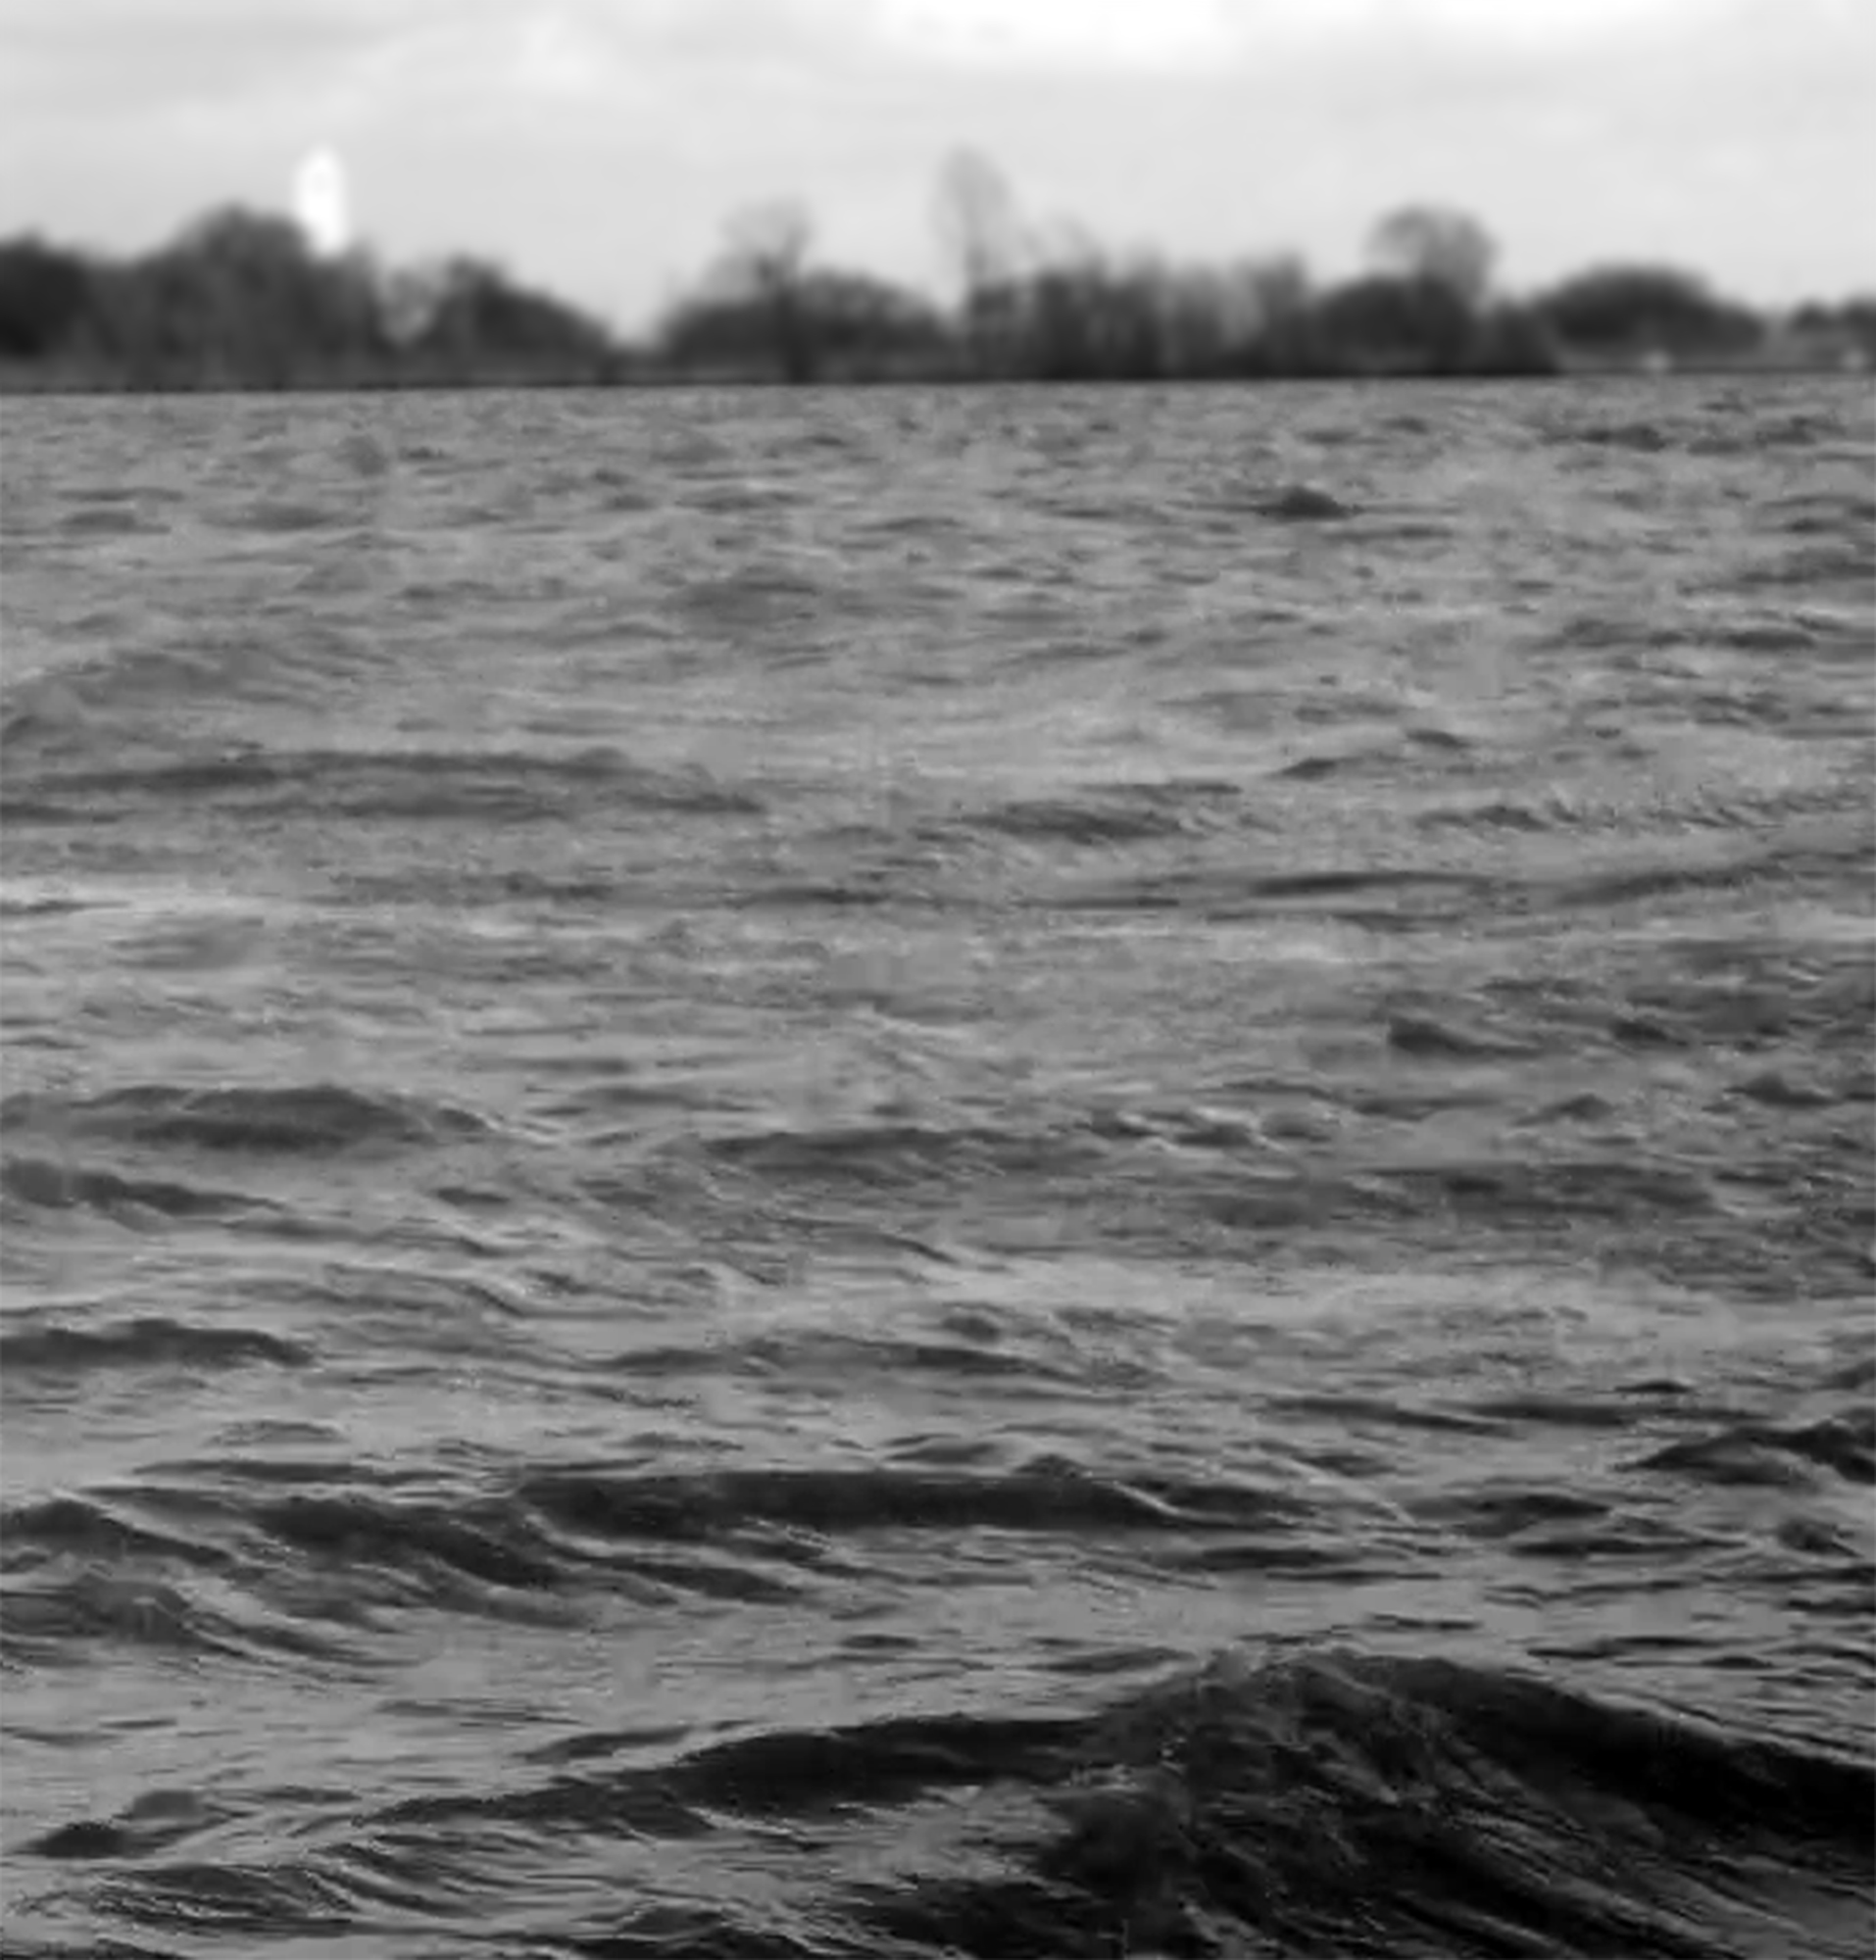 Black and white photo of a wavy lake.